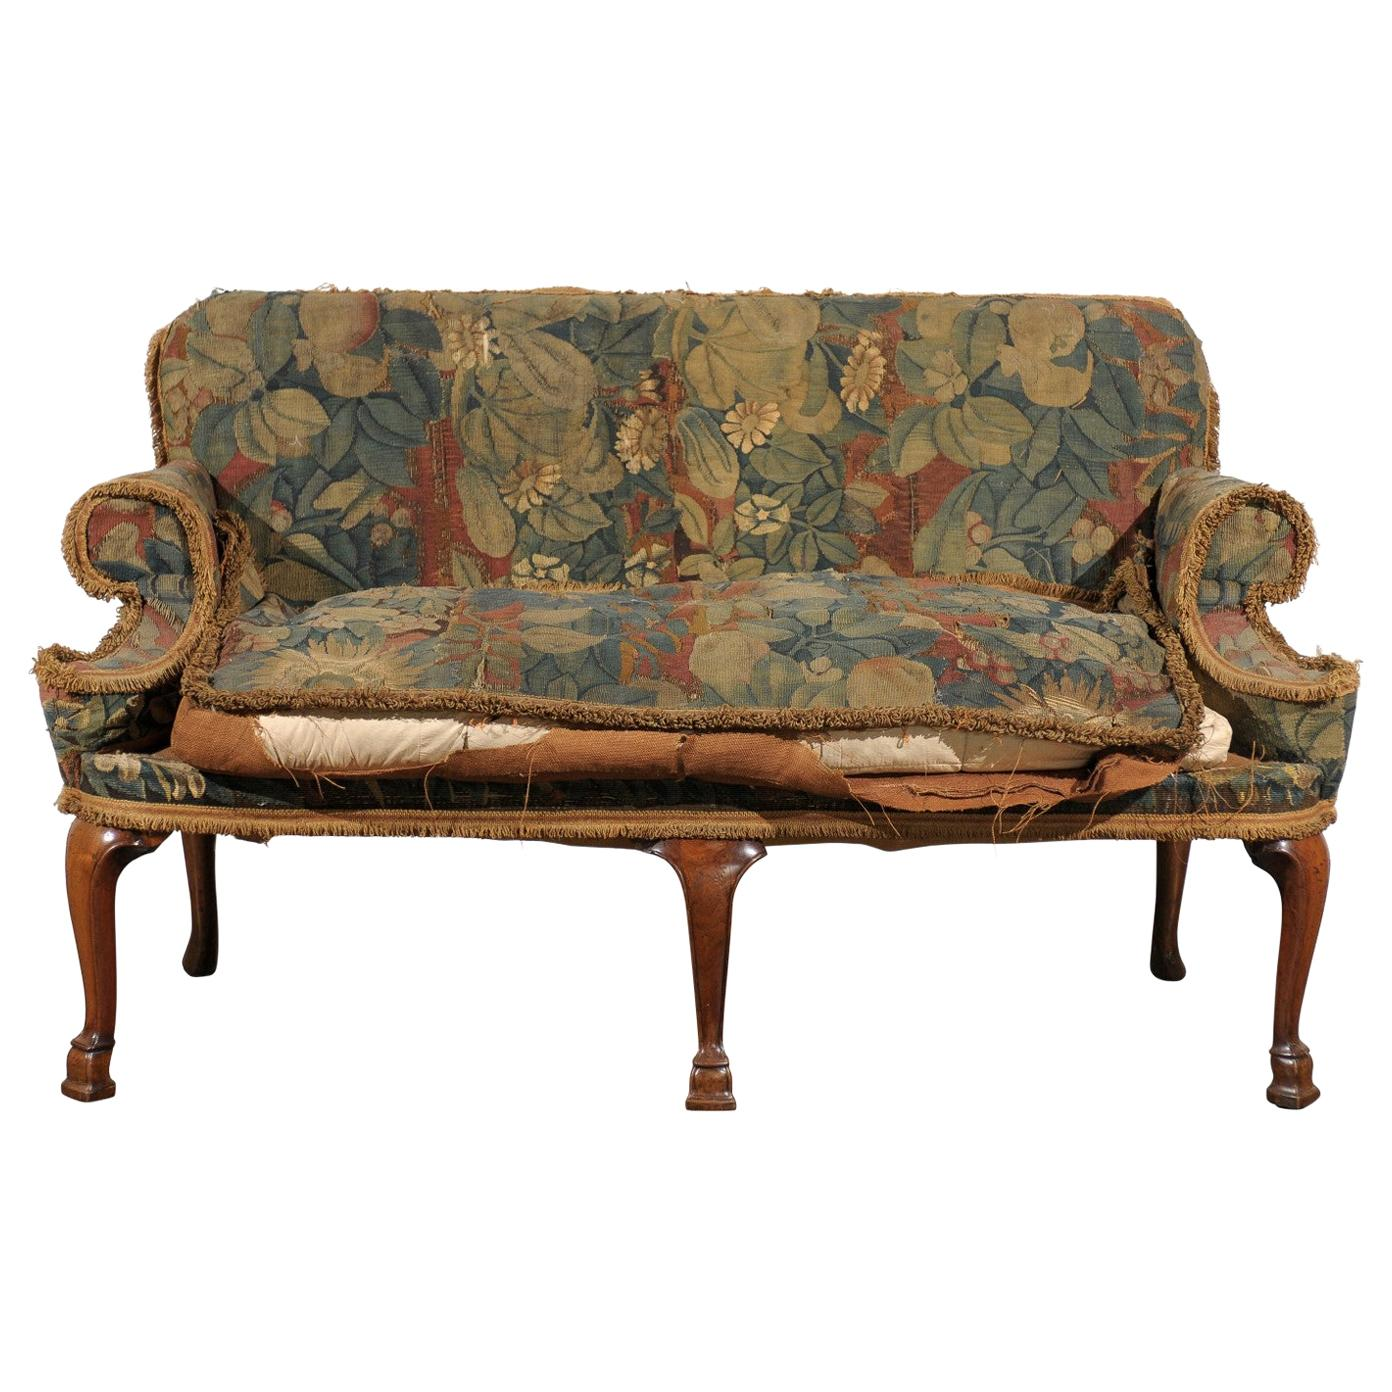 19th Century English Settee with Needlepoint Fabric